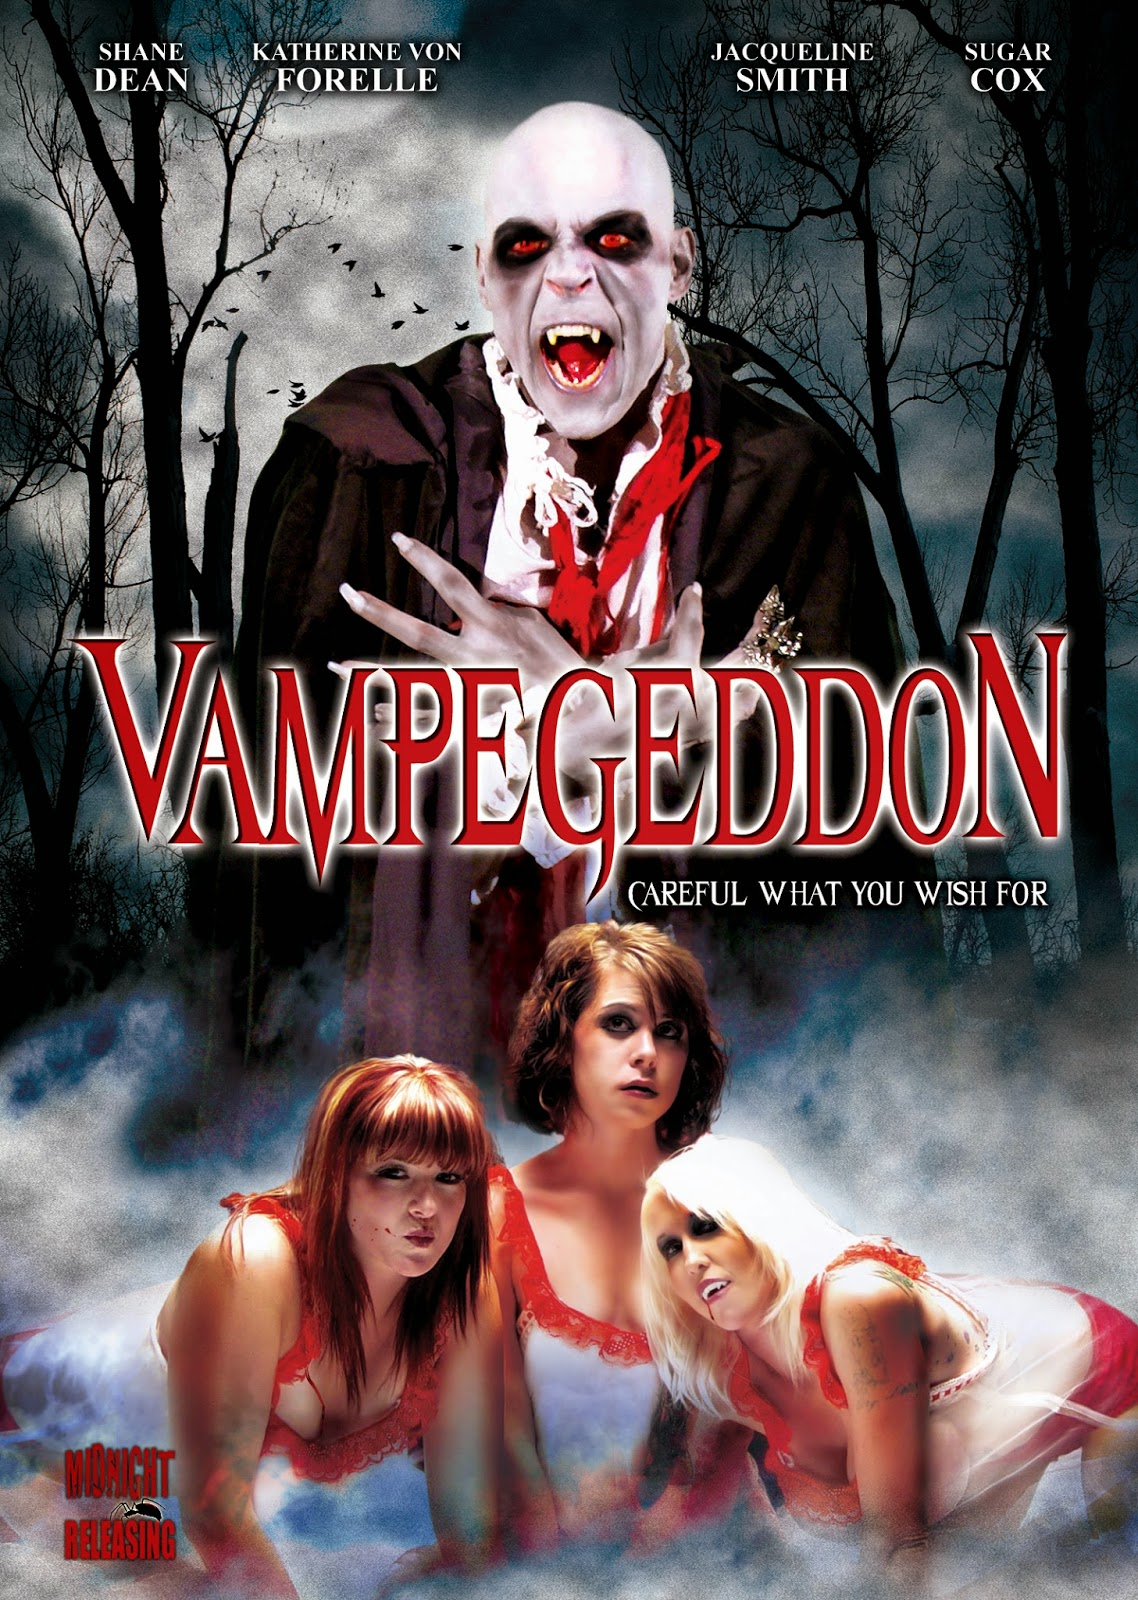 Vampegeddon, Jeffrey Alan Miller, Vampire films, Horror films, Vampire movies, Horror movies, blood movies, Dark movies, Scary movies, Ghost movies